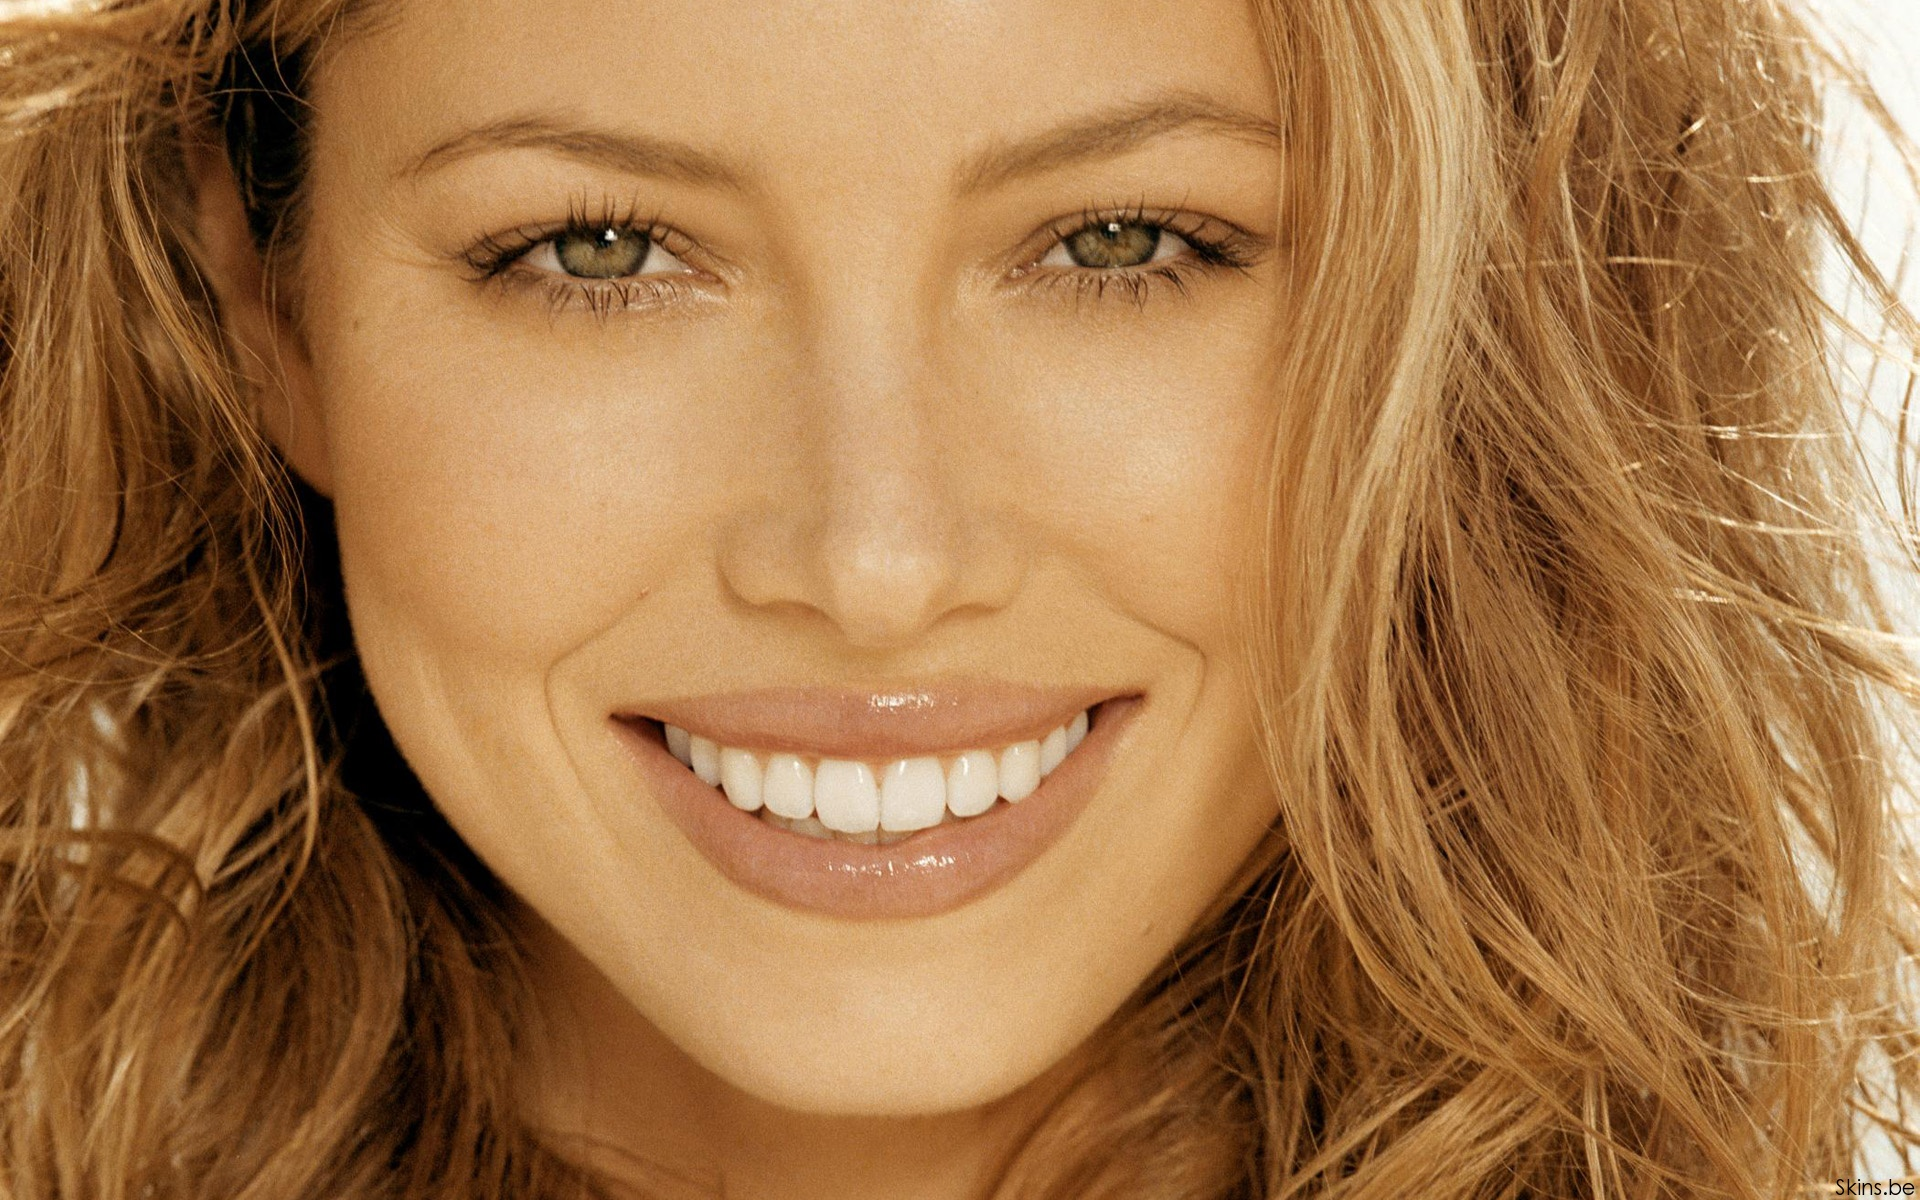 Beautiful Smile Wallpaper: Jessica Biel Wallpapers 2015, Pictures, Images